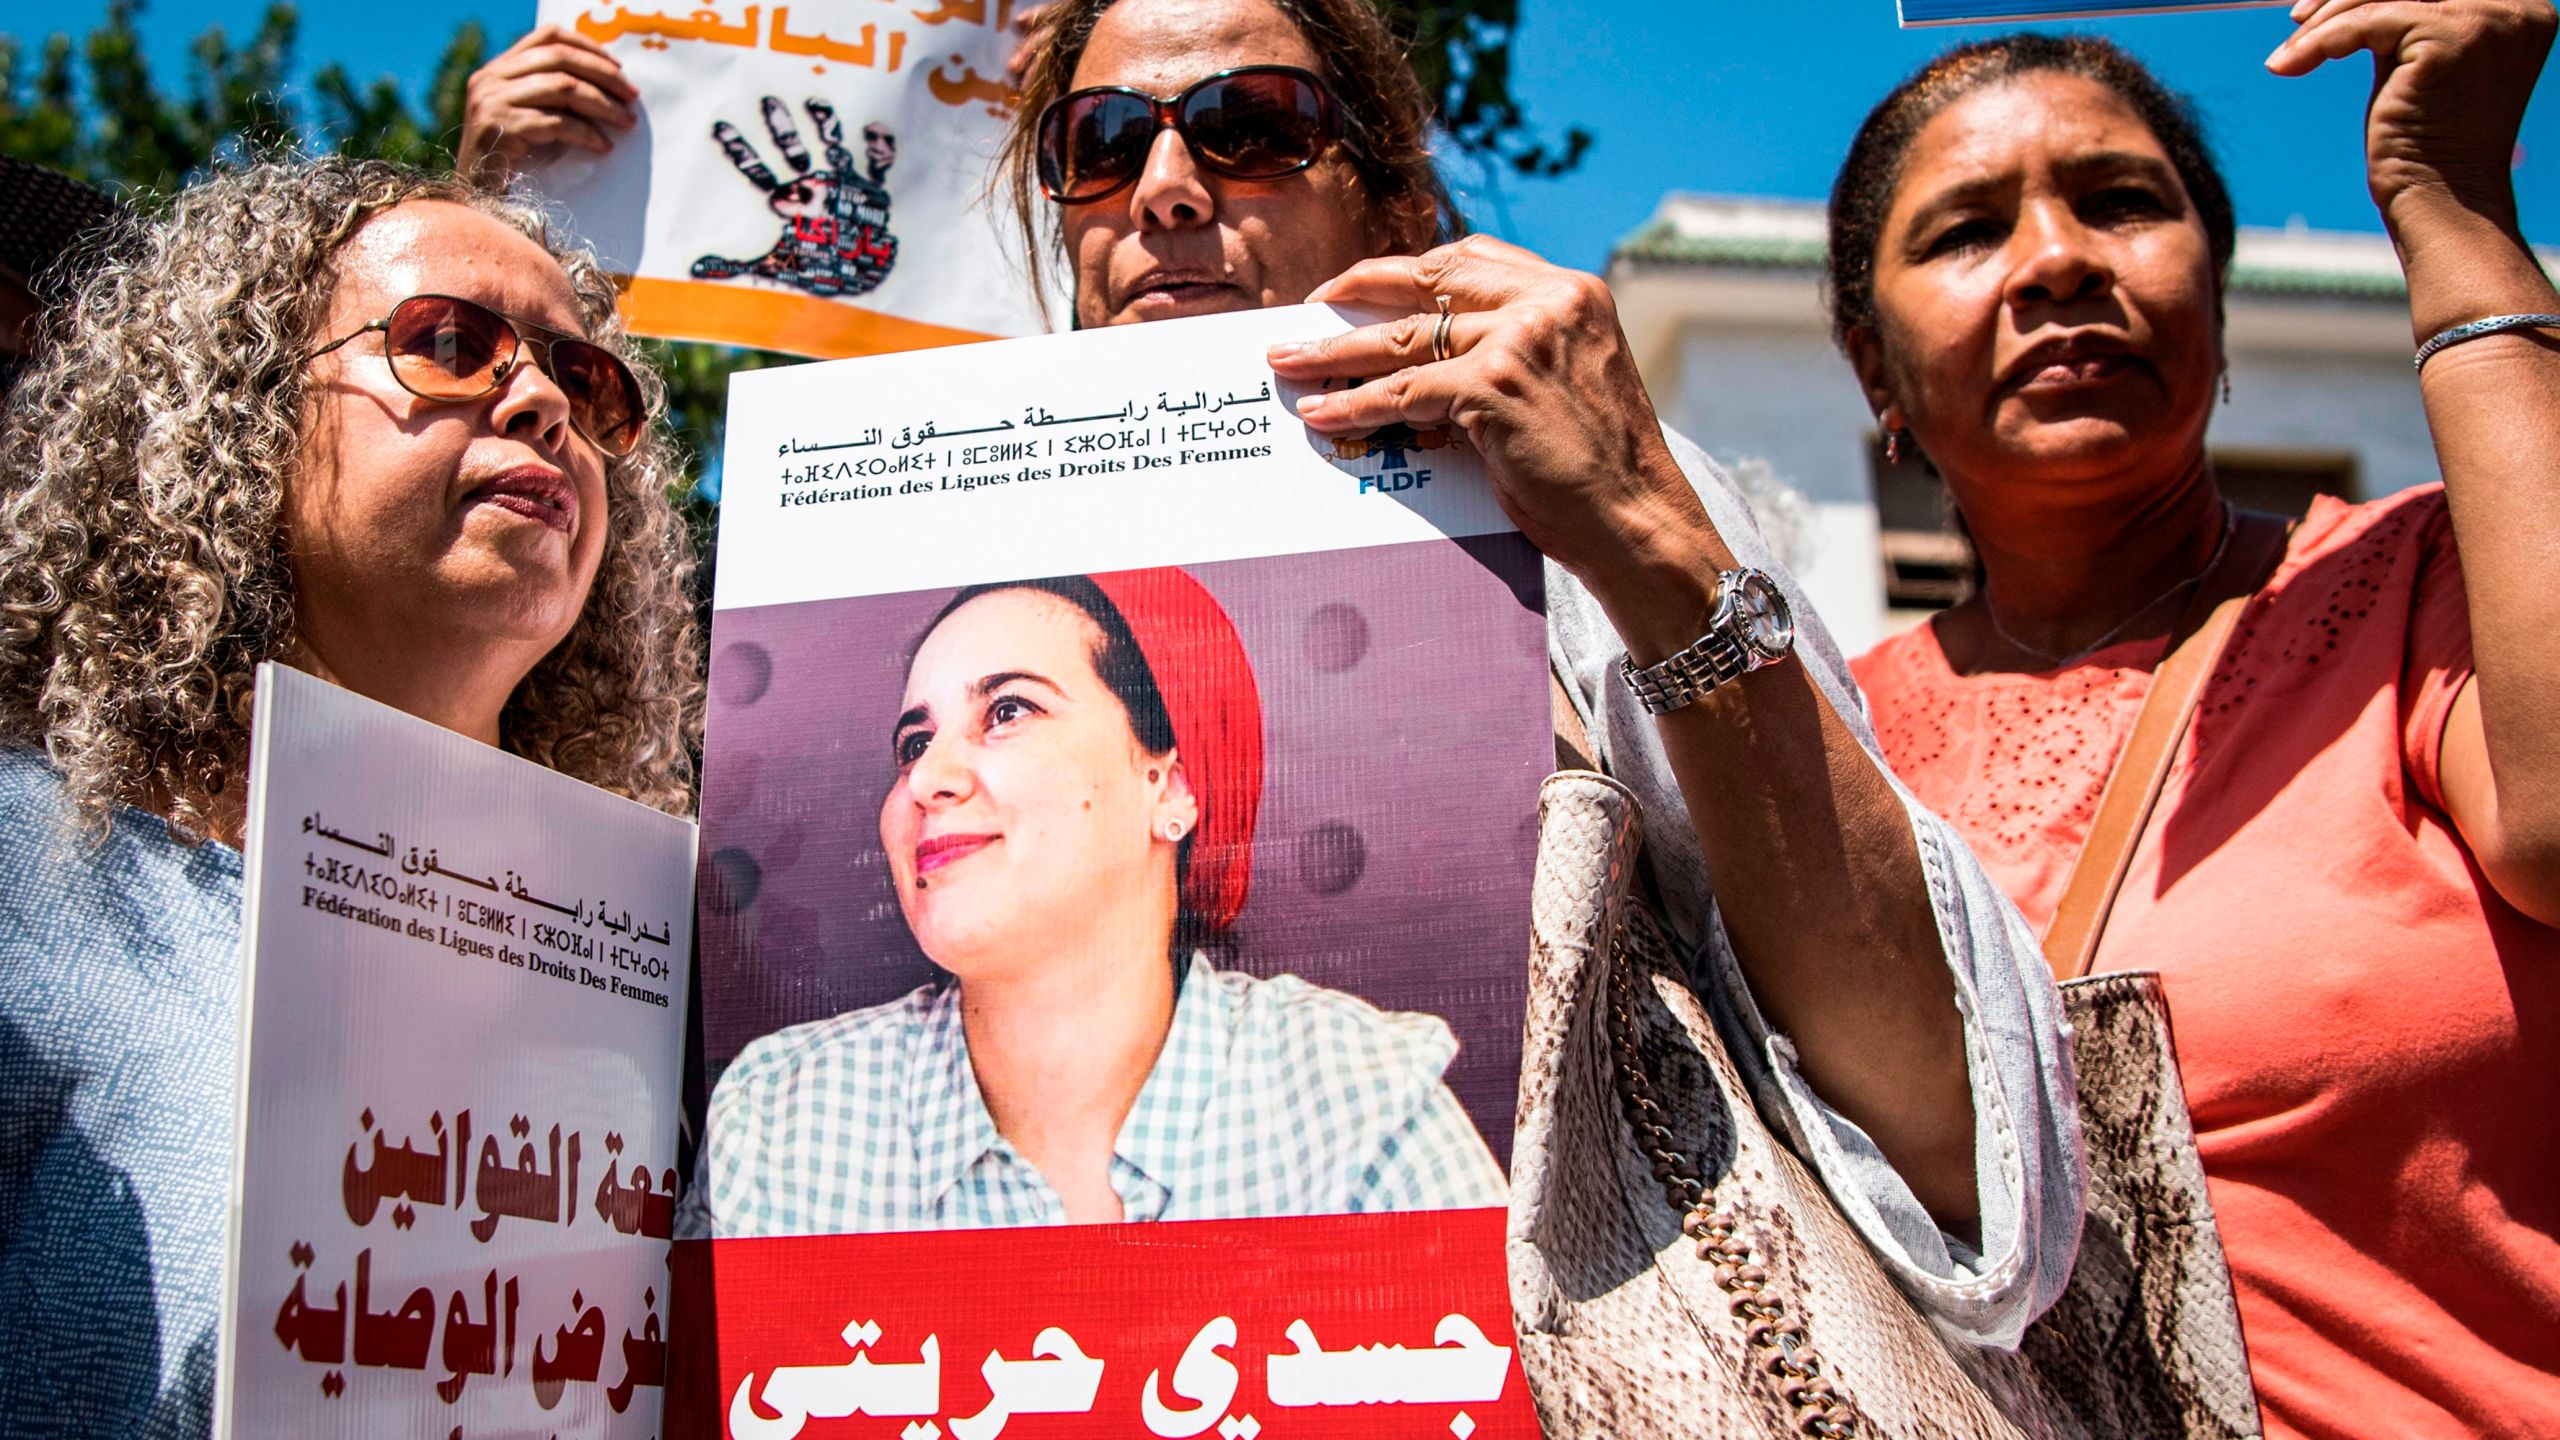 "Demonstrators hold up a sign showing the portrait of Hajar Raissouni, a Morrocan journalist of the daily newspaper Akhbar El-Youm, with a caption below in Arabic reading ""My body, My freedom"", as they gather outside a courthouse holding her trial on charges of abortion in the capital Rabat on Sept. 9, 2019. (Credit: FADEL SENNA/AFP/Getty Images)"